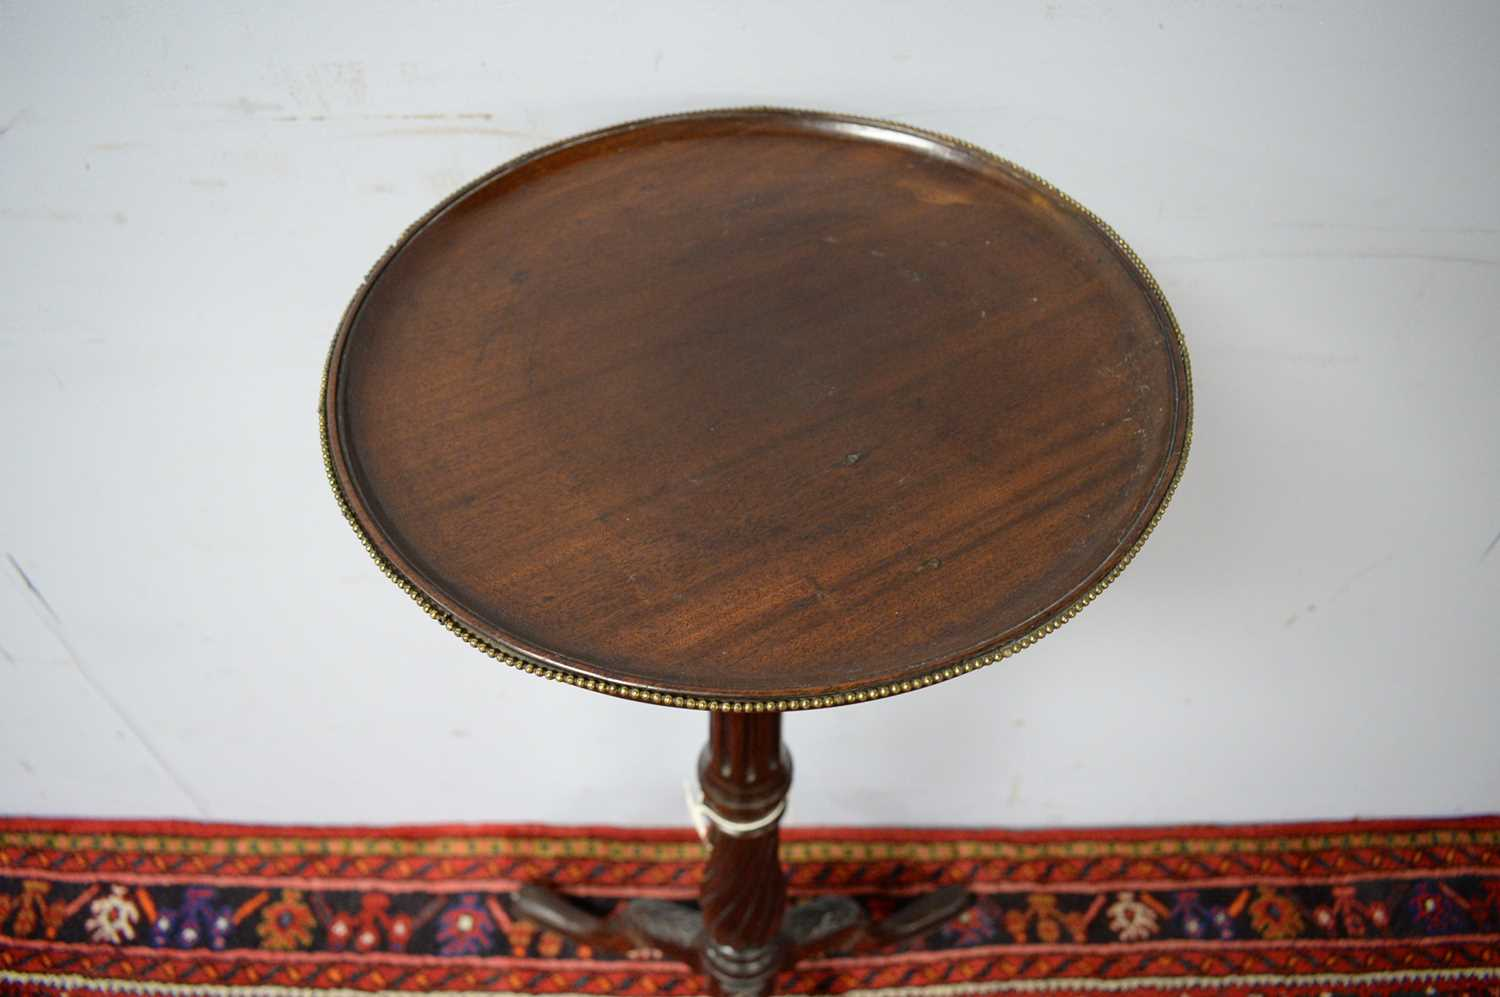 20th C George III style jardiniere stand. - Image 4 of 5